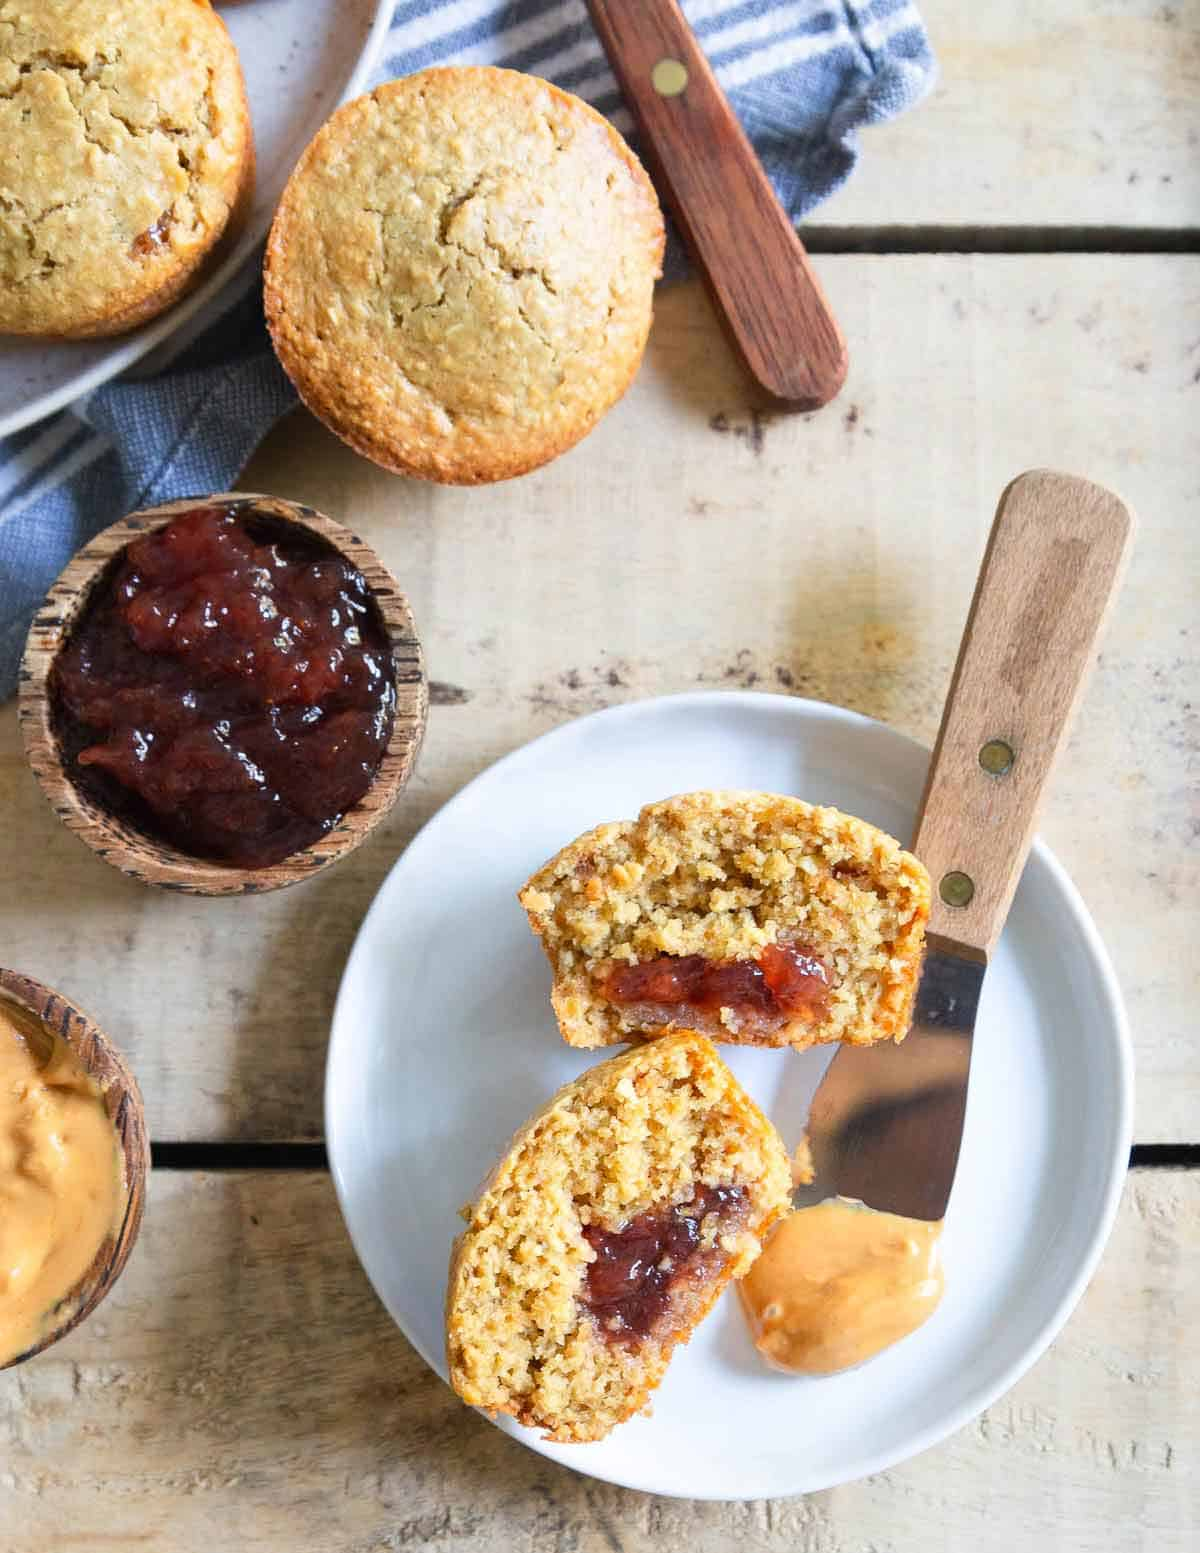 Peanut butter and jelly muffins made with gluten-free oat flour are a tasty afternoon treat!